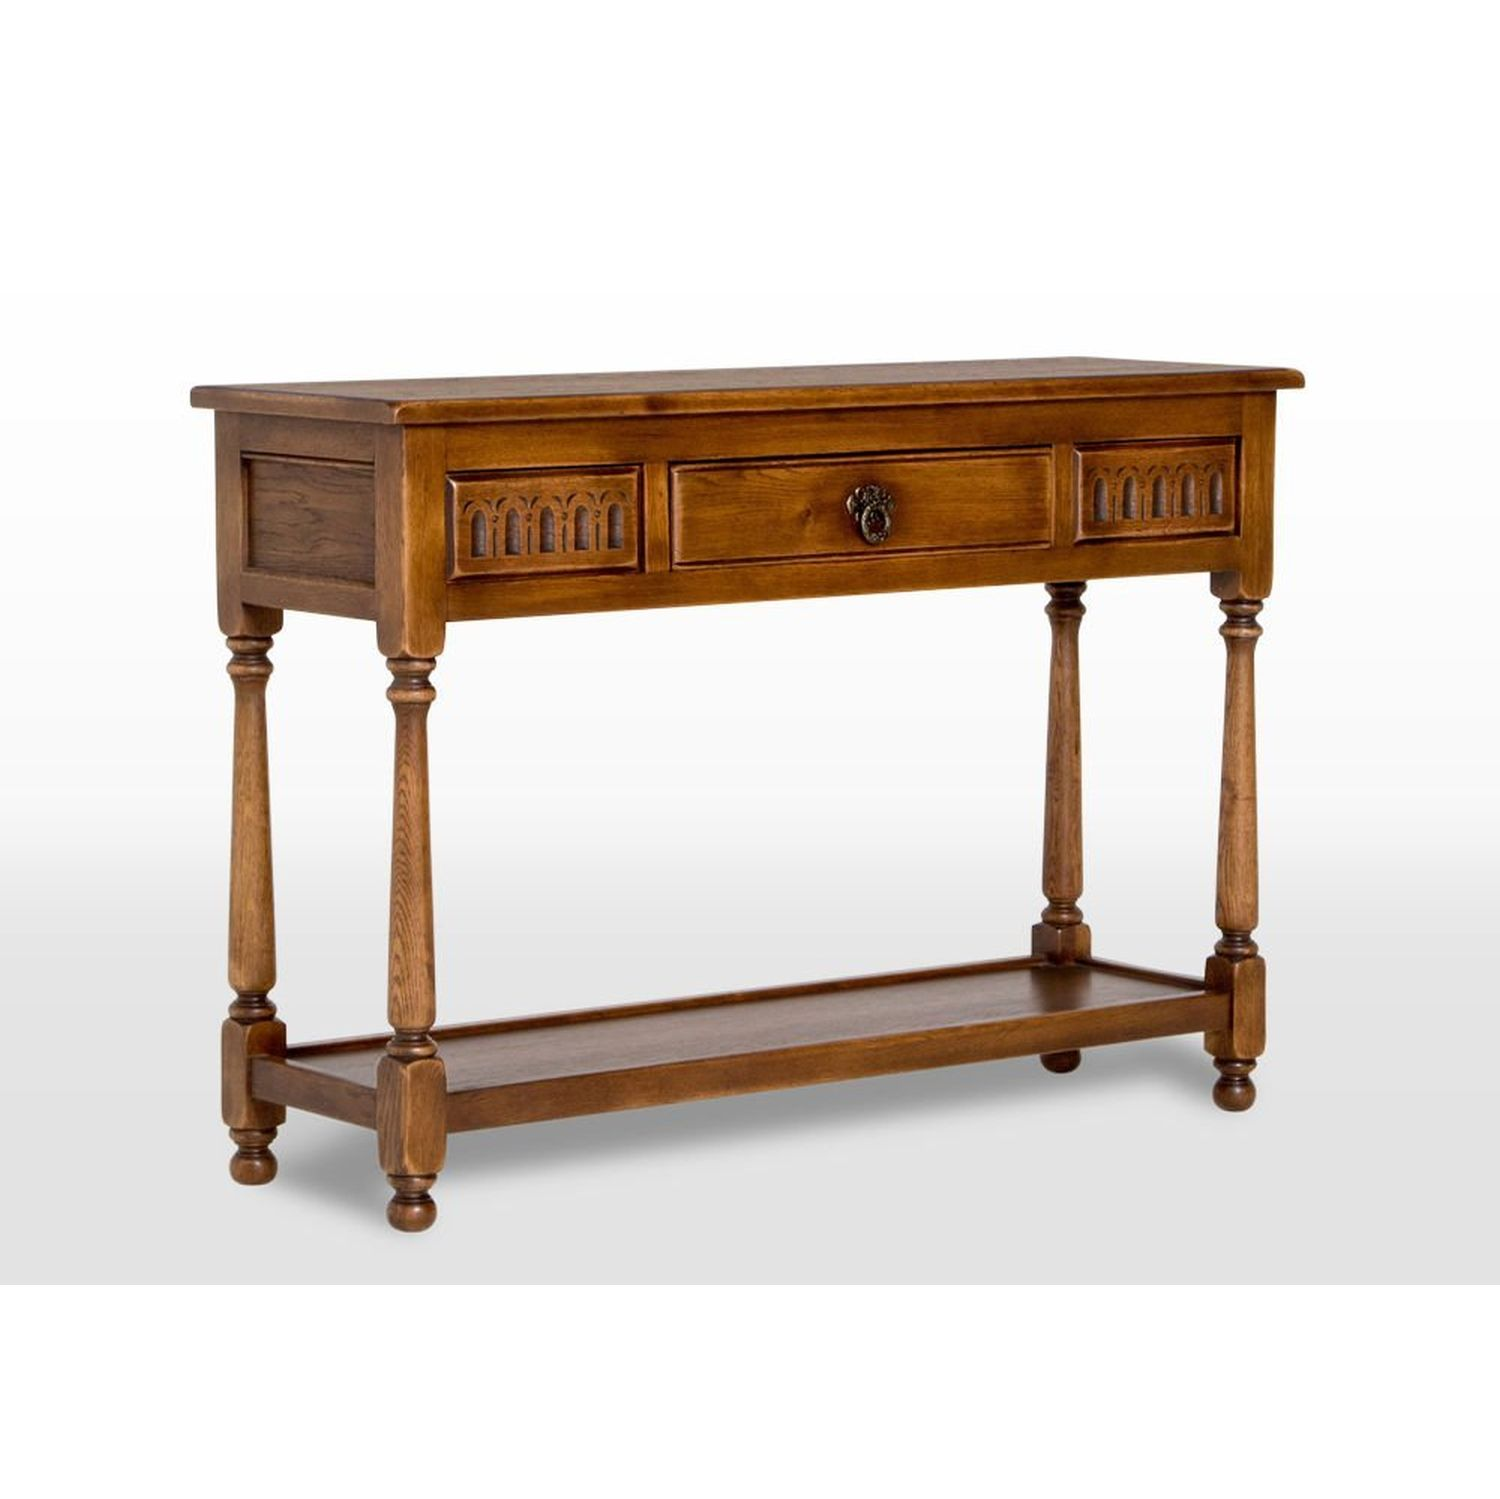 Image of Old Charm Console Table